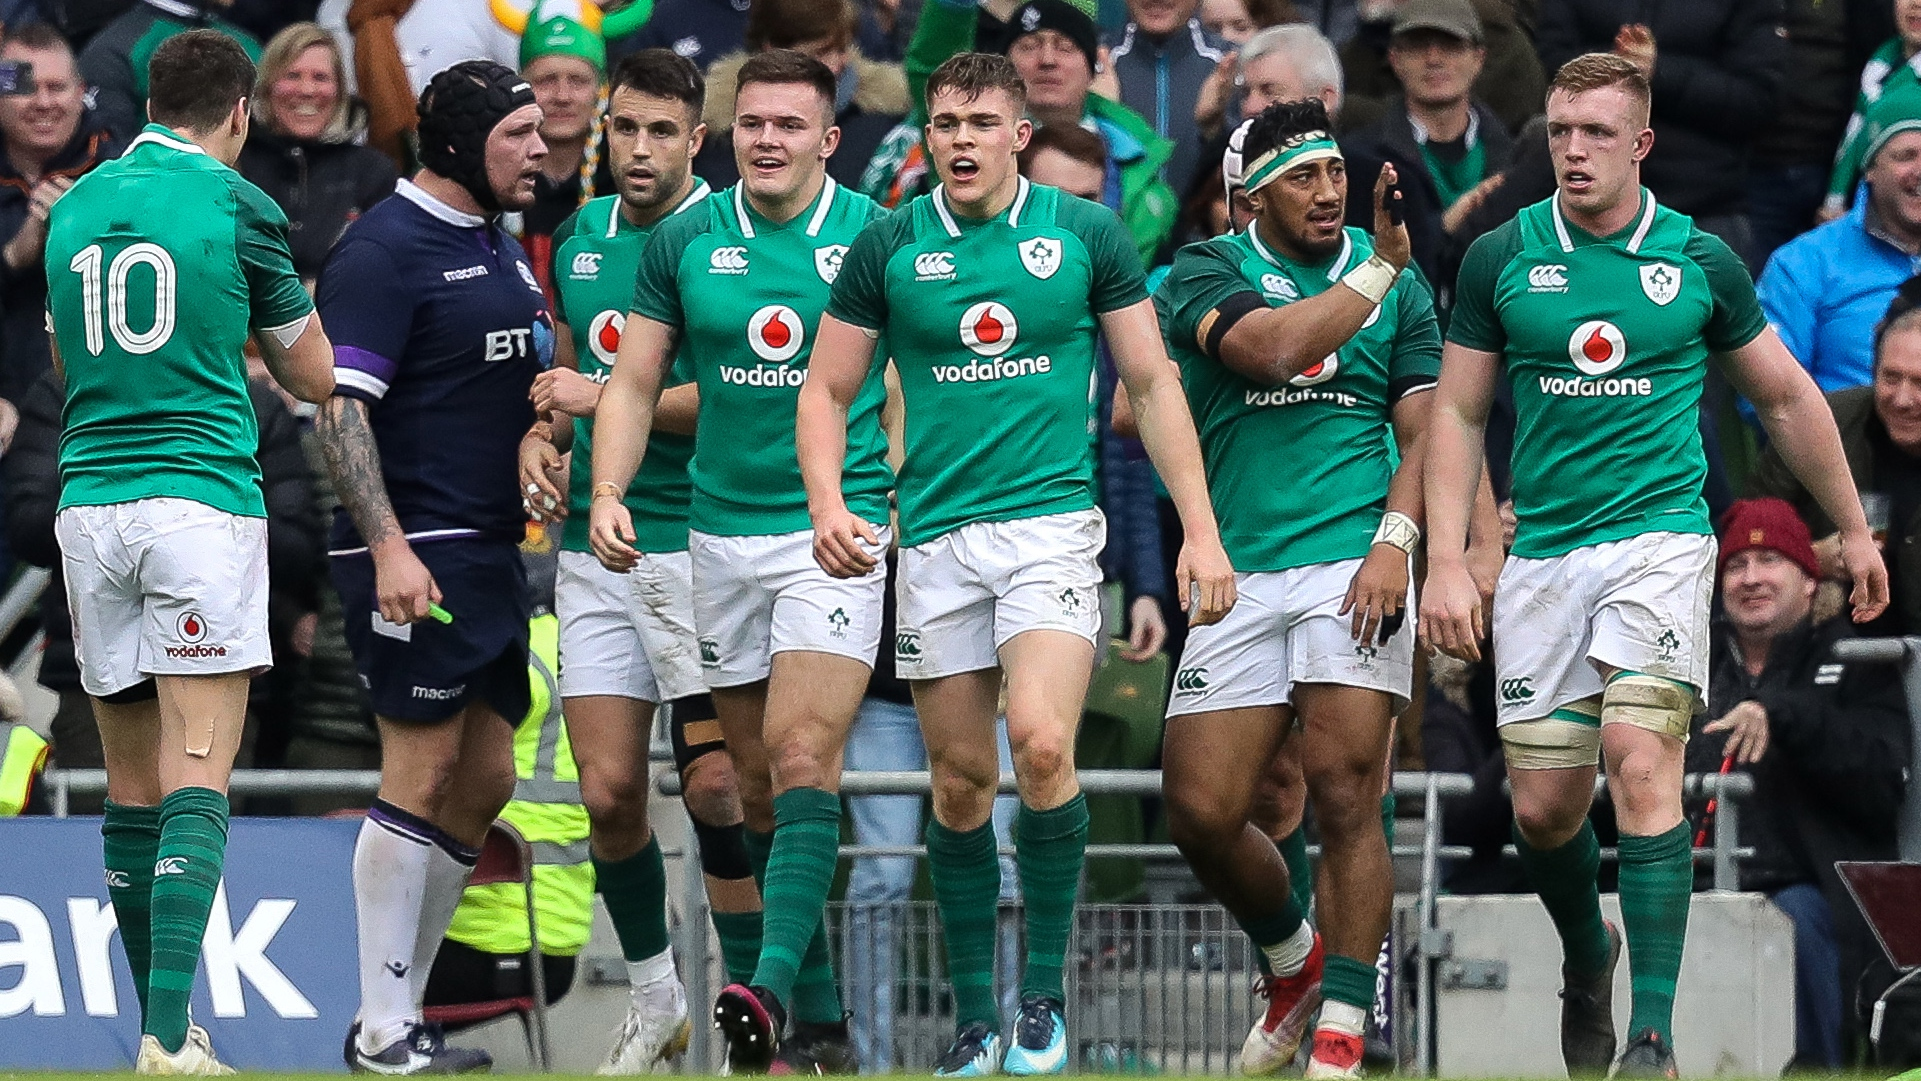 The Tragedy of International Rules